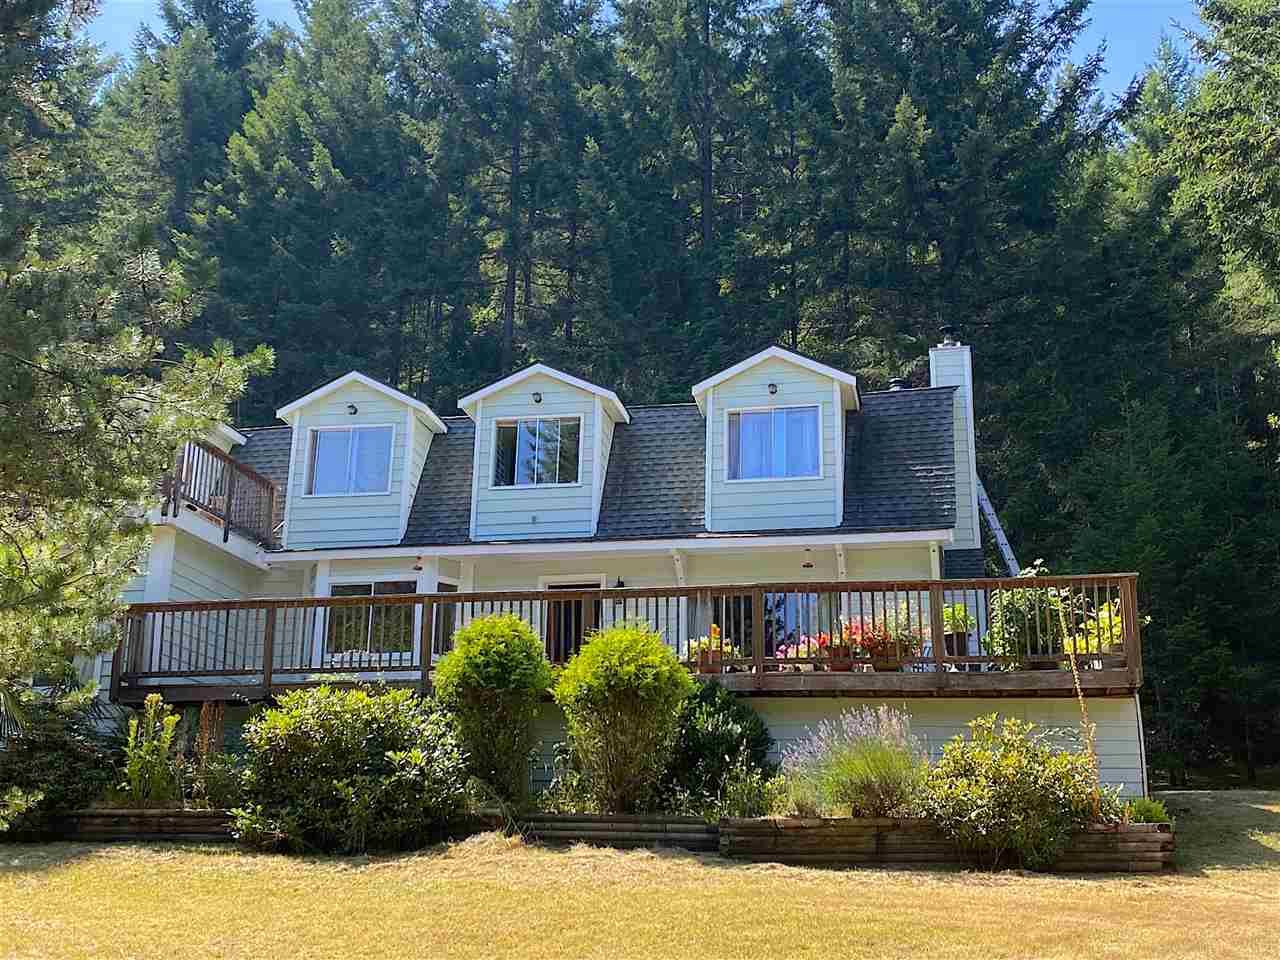 Main Photo: 749 GEORGIA VIEW Road: Galiano Island House for sale (Islands-Van. & Gulf)  : MLS®# R2487145